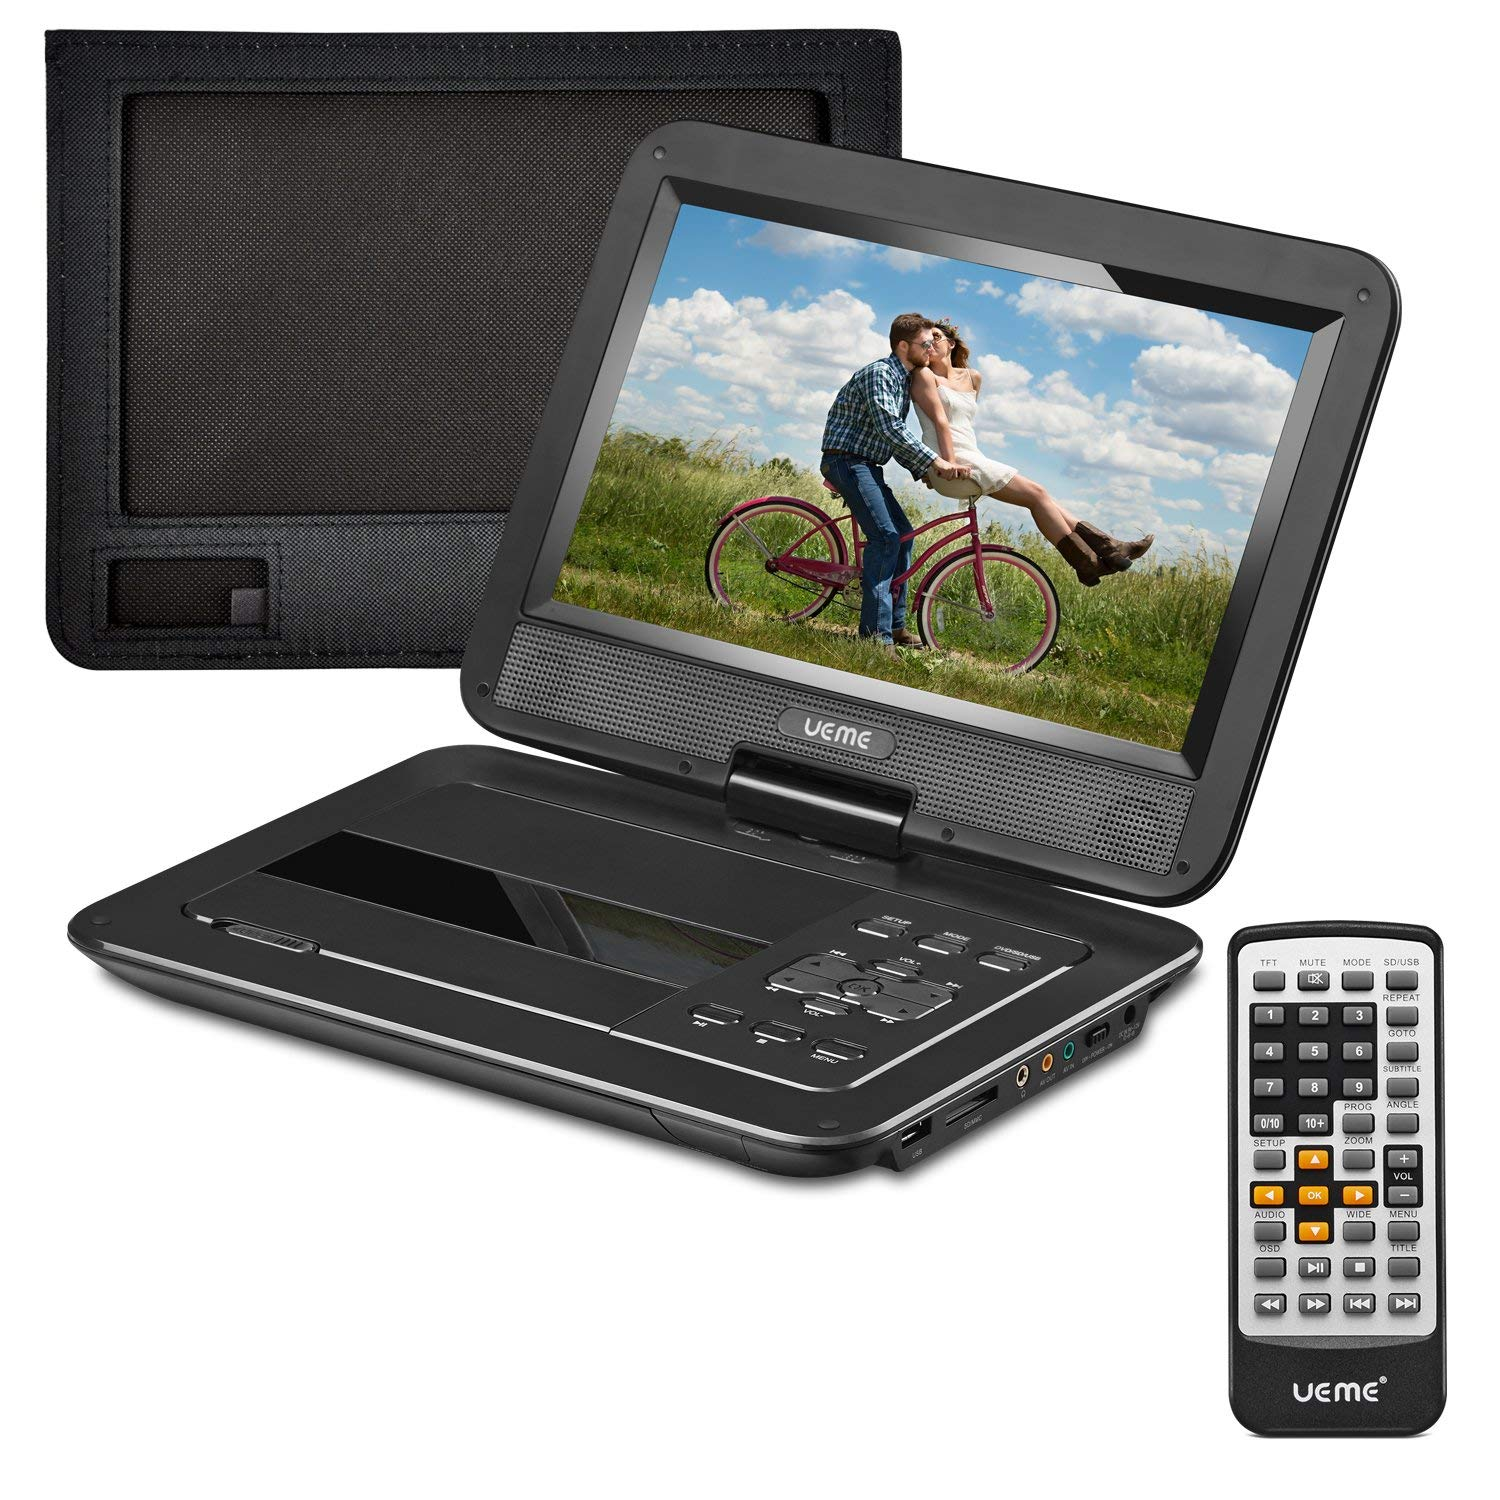 UEME 10.1-Inches Portable DVD Player with Swivel Screen and Car Headrest Mount Holder, PD-1020 (Black)